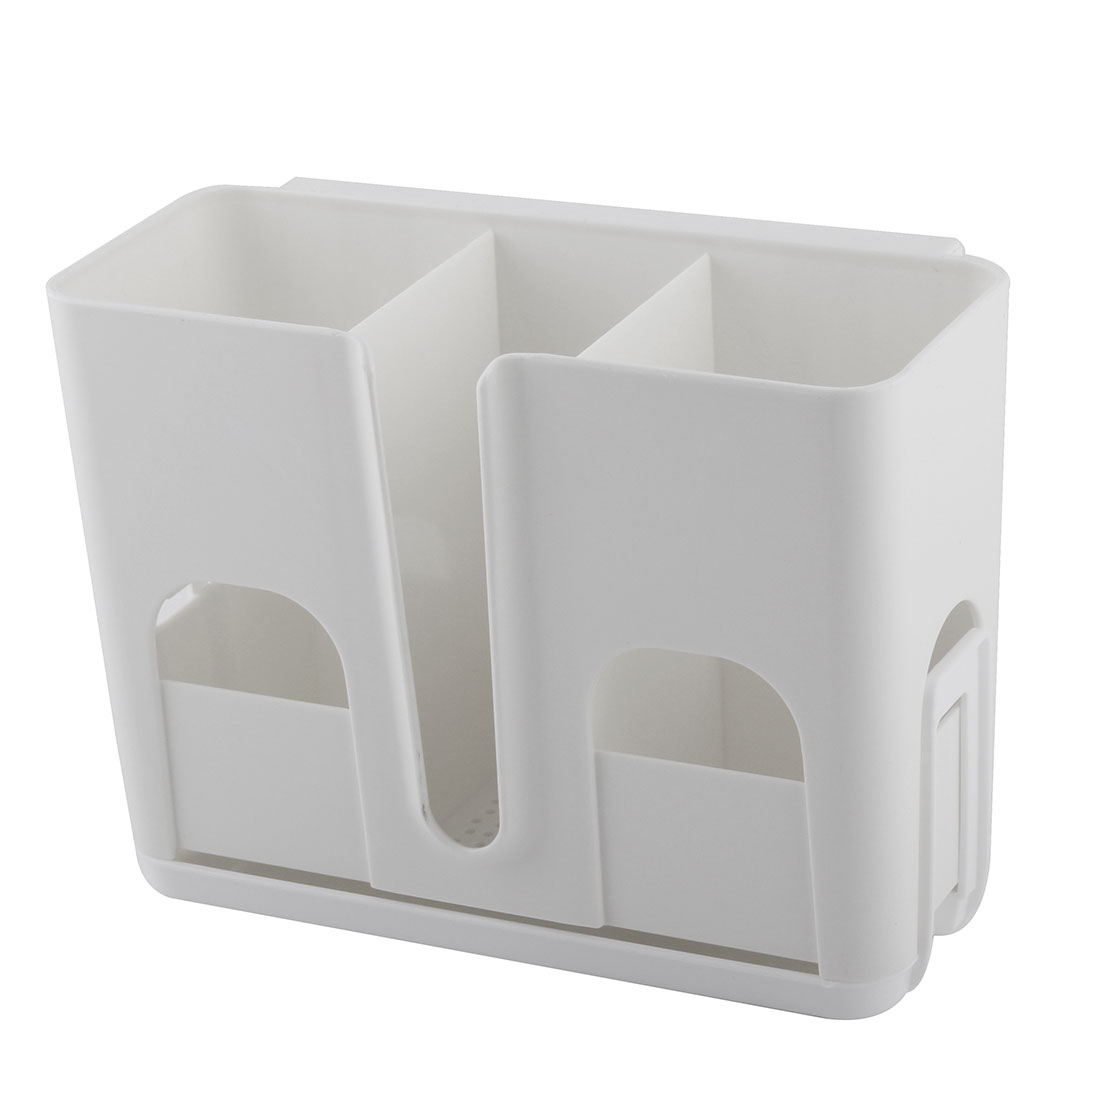 Houdehold Plastic 3 Compartments Wall Mount Suction Cup Hanging Storage Shelf White